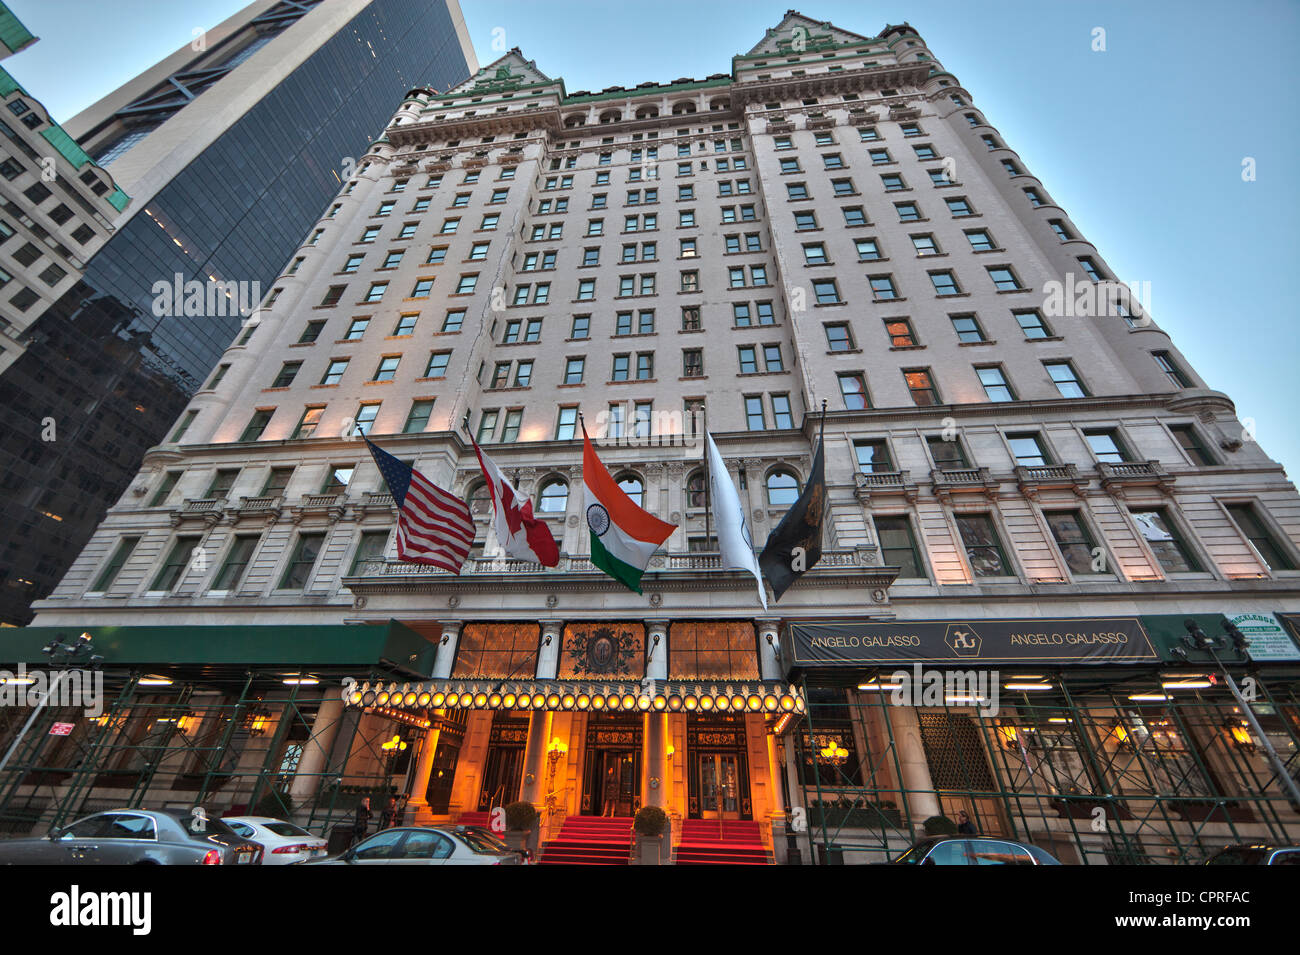 The plaza hotel owned by fairmont hotels in manhattan new for Top luxury hotels nyc